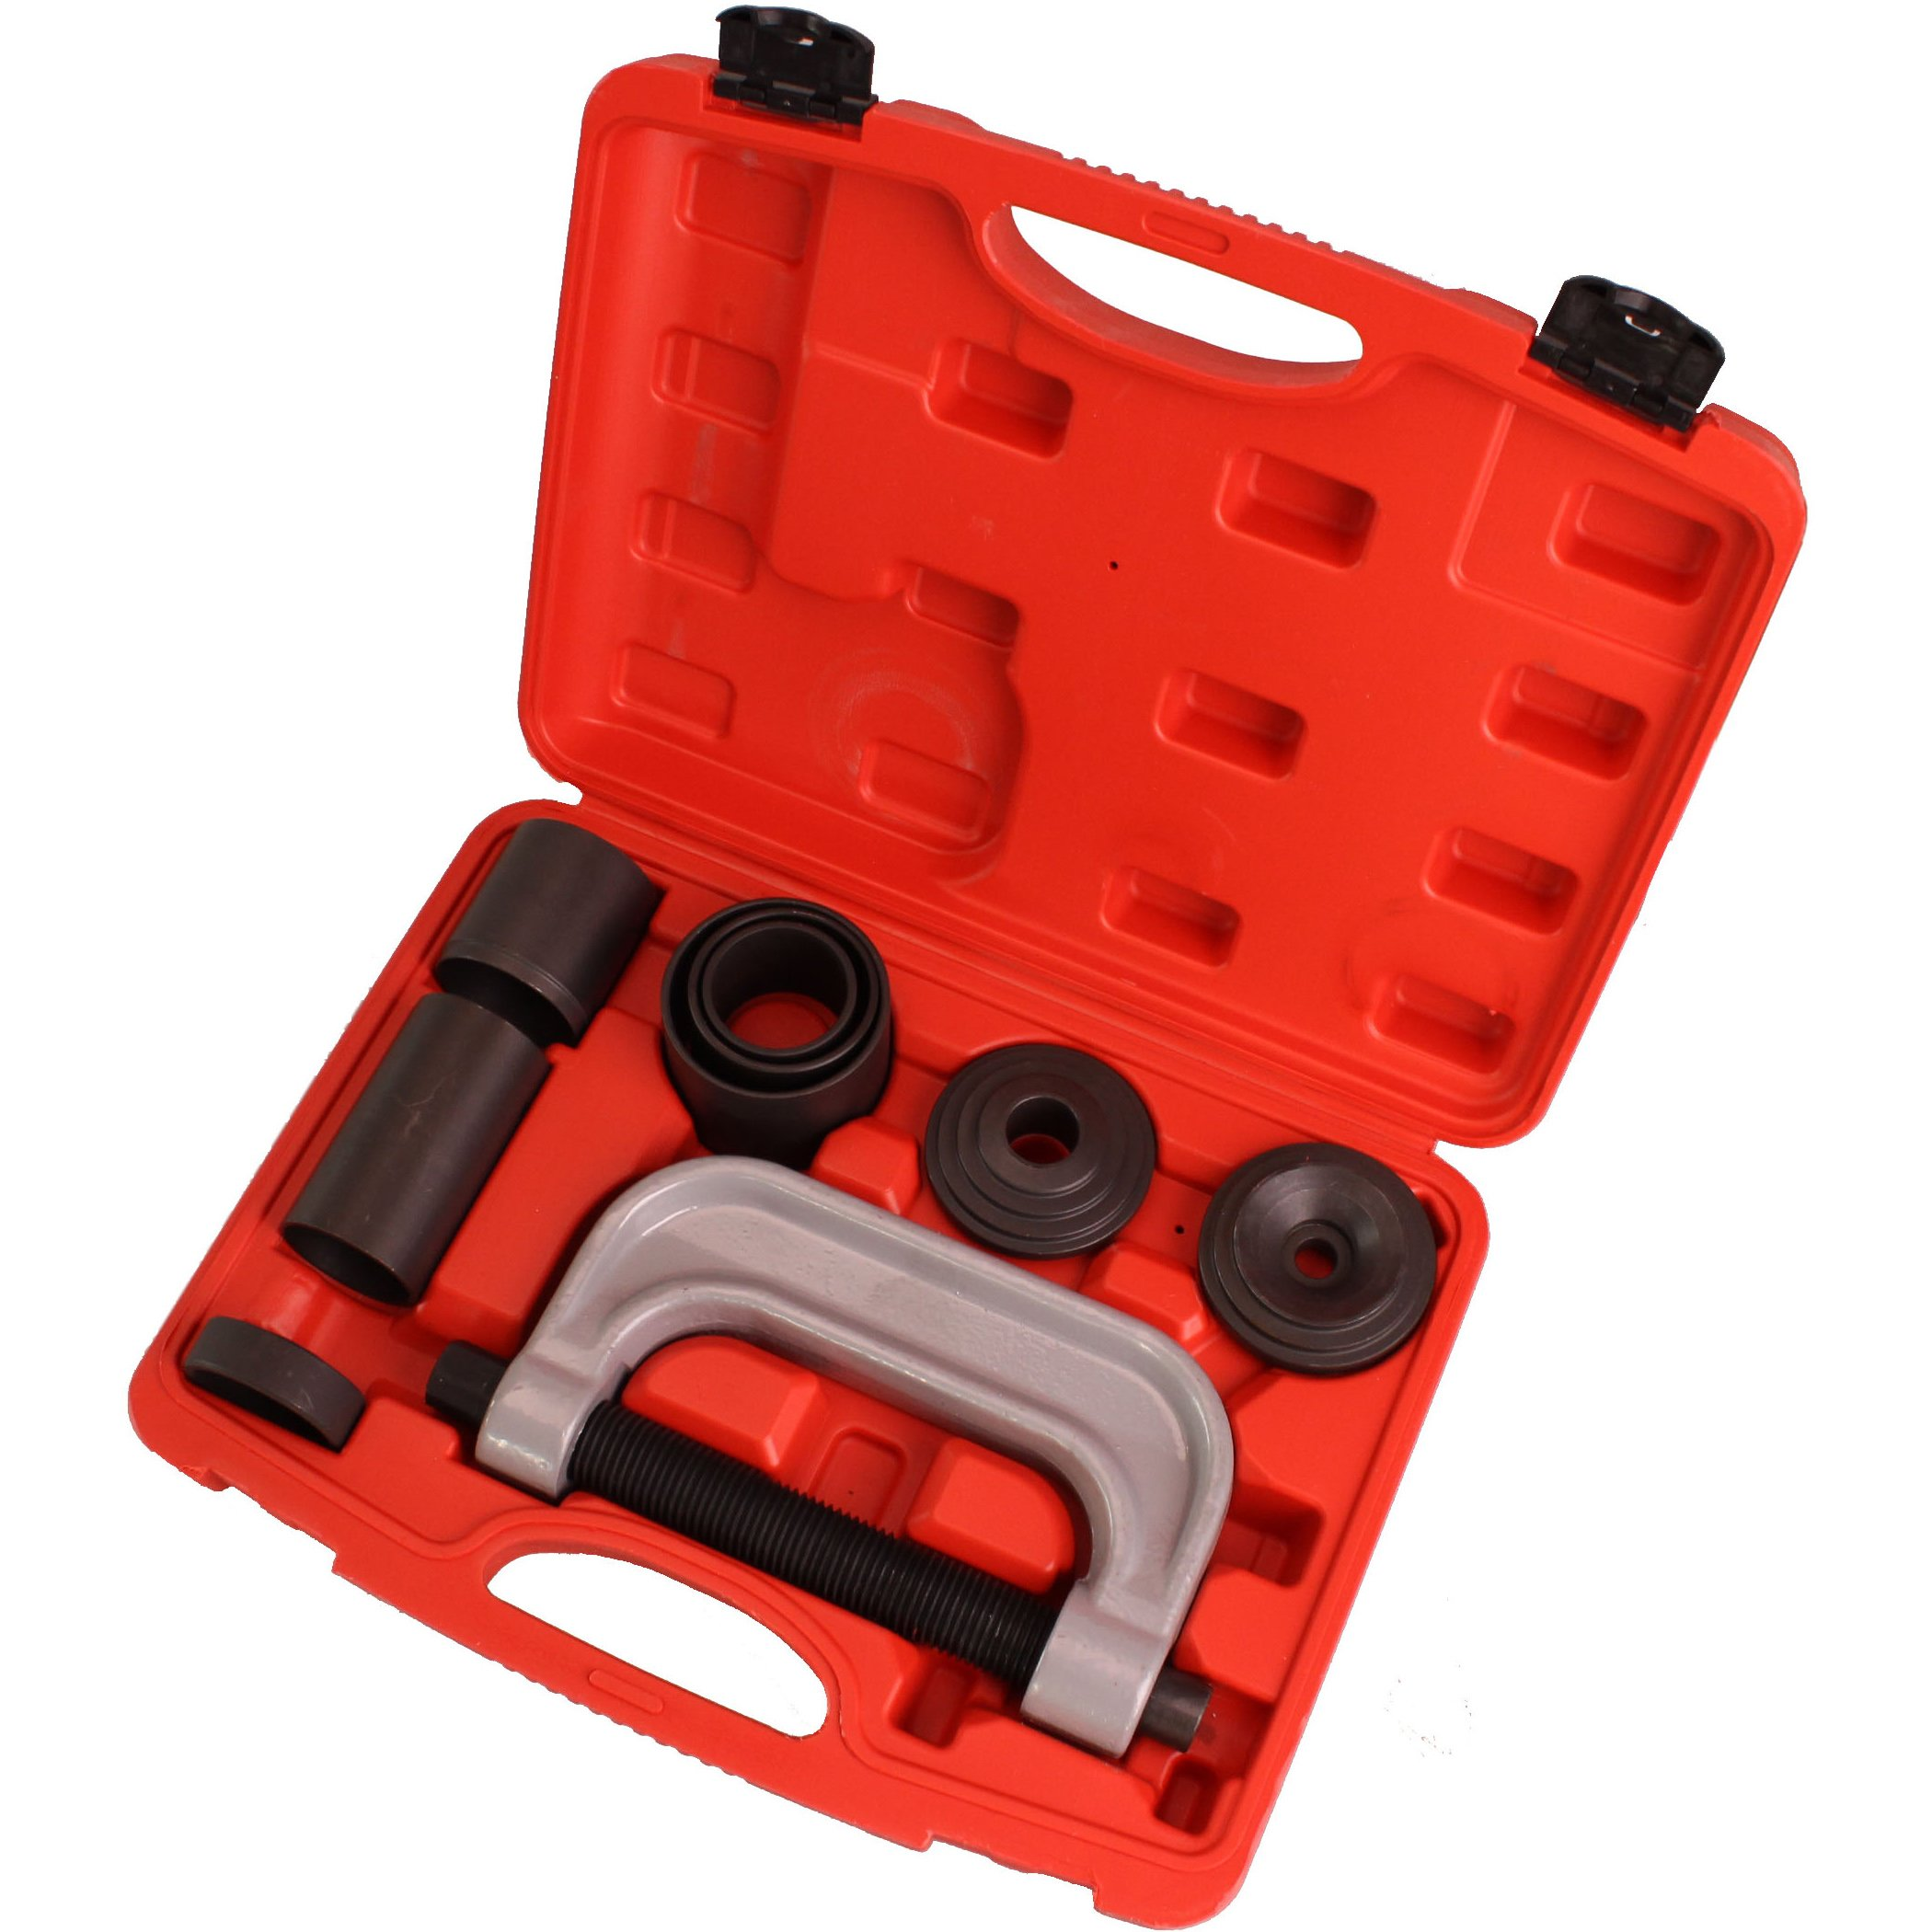 CARTMAN Service Vehicles Remover Adapters